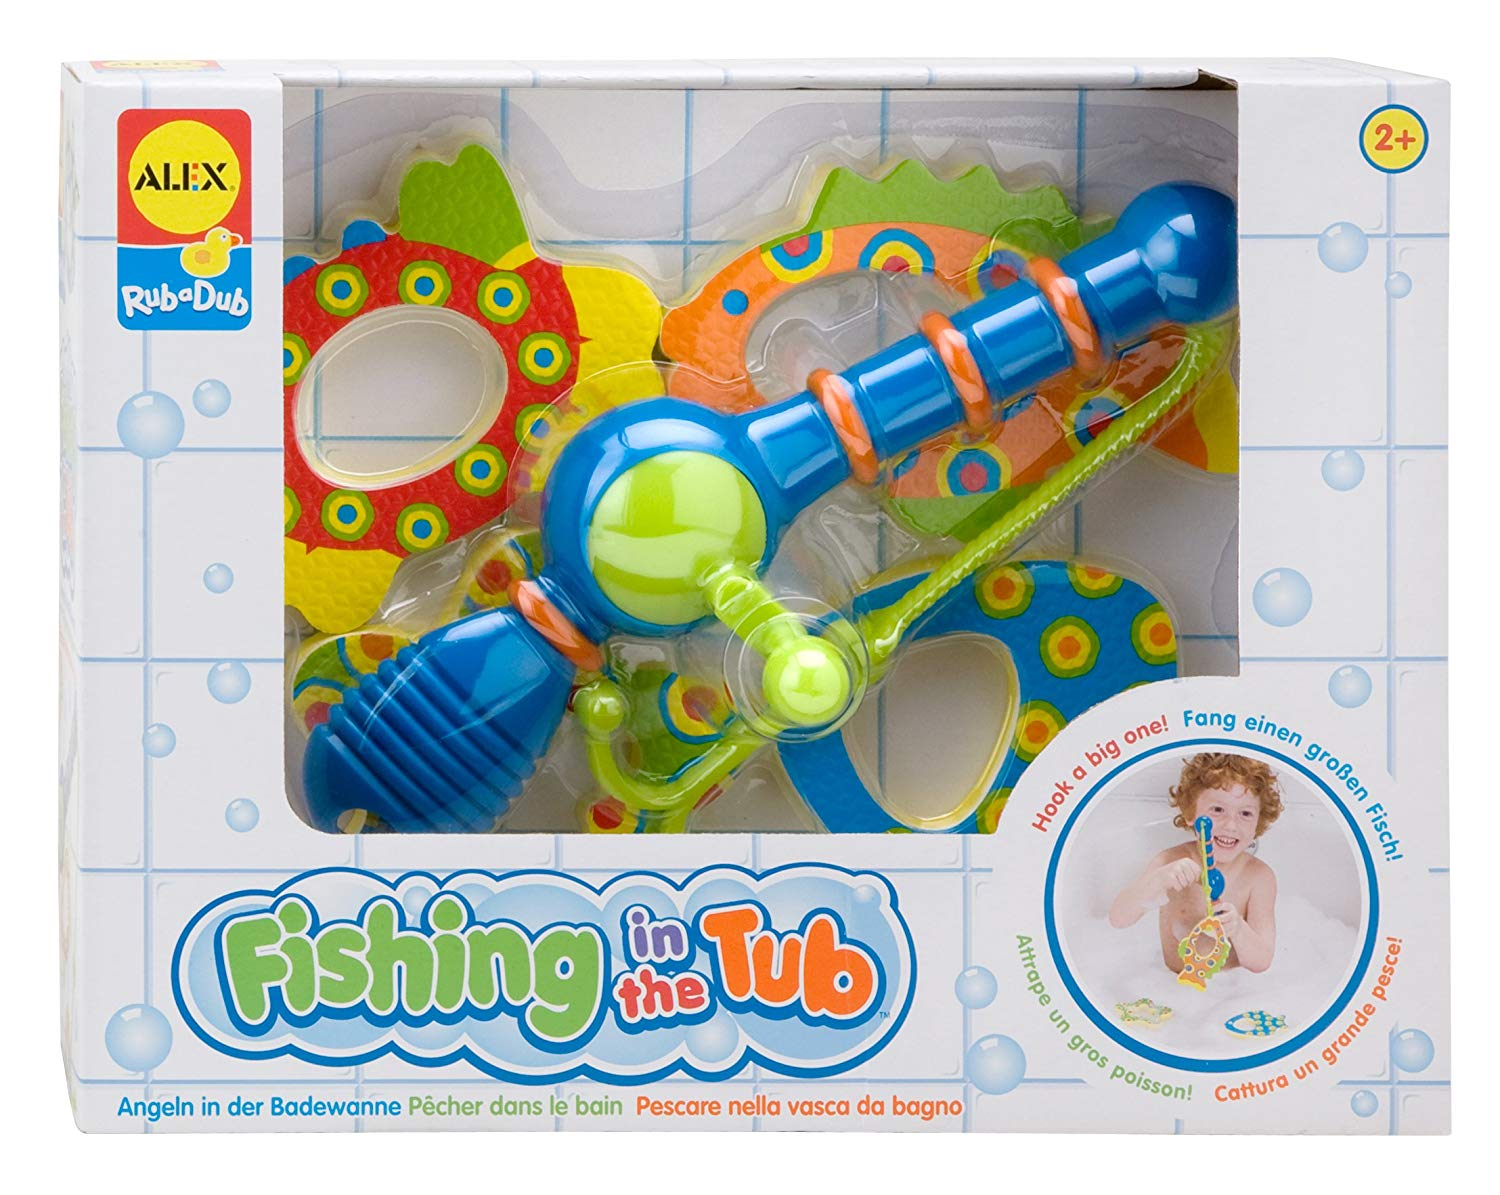 Alex Rub a Dub Fishing in the Tub bath toy